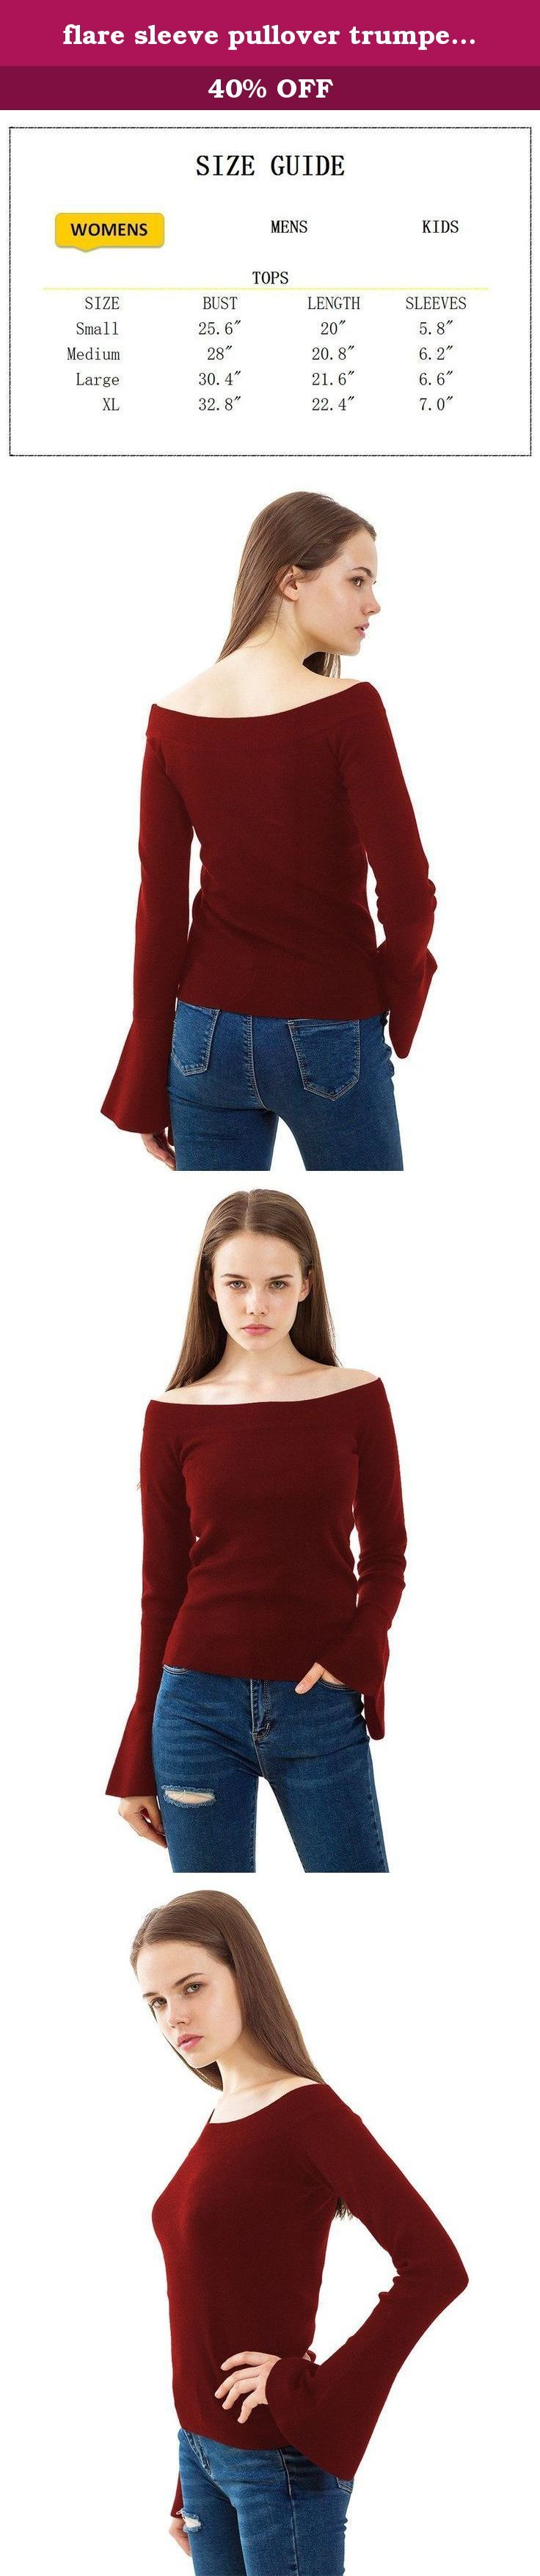 flare sleeve pullover trumpet sleeve cardigan Dark Red S pullover sweater Off Shoulder Tops, Dark Red, Small. Brand owner: PRETTIGO Brand: Keeping update with fashion and making your confidence visible, she speaks for elegance, happiness, and confidence. The core value of our brand is to offer products with affordable and reasonable price, but in great quality. Product details: Materials: Cotton; Medium weight, neither too thin nor too thick, breathable and comfortable. Size details…